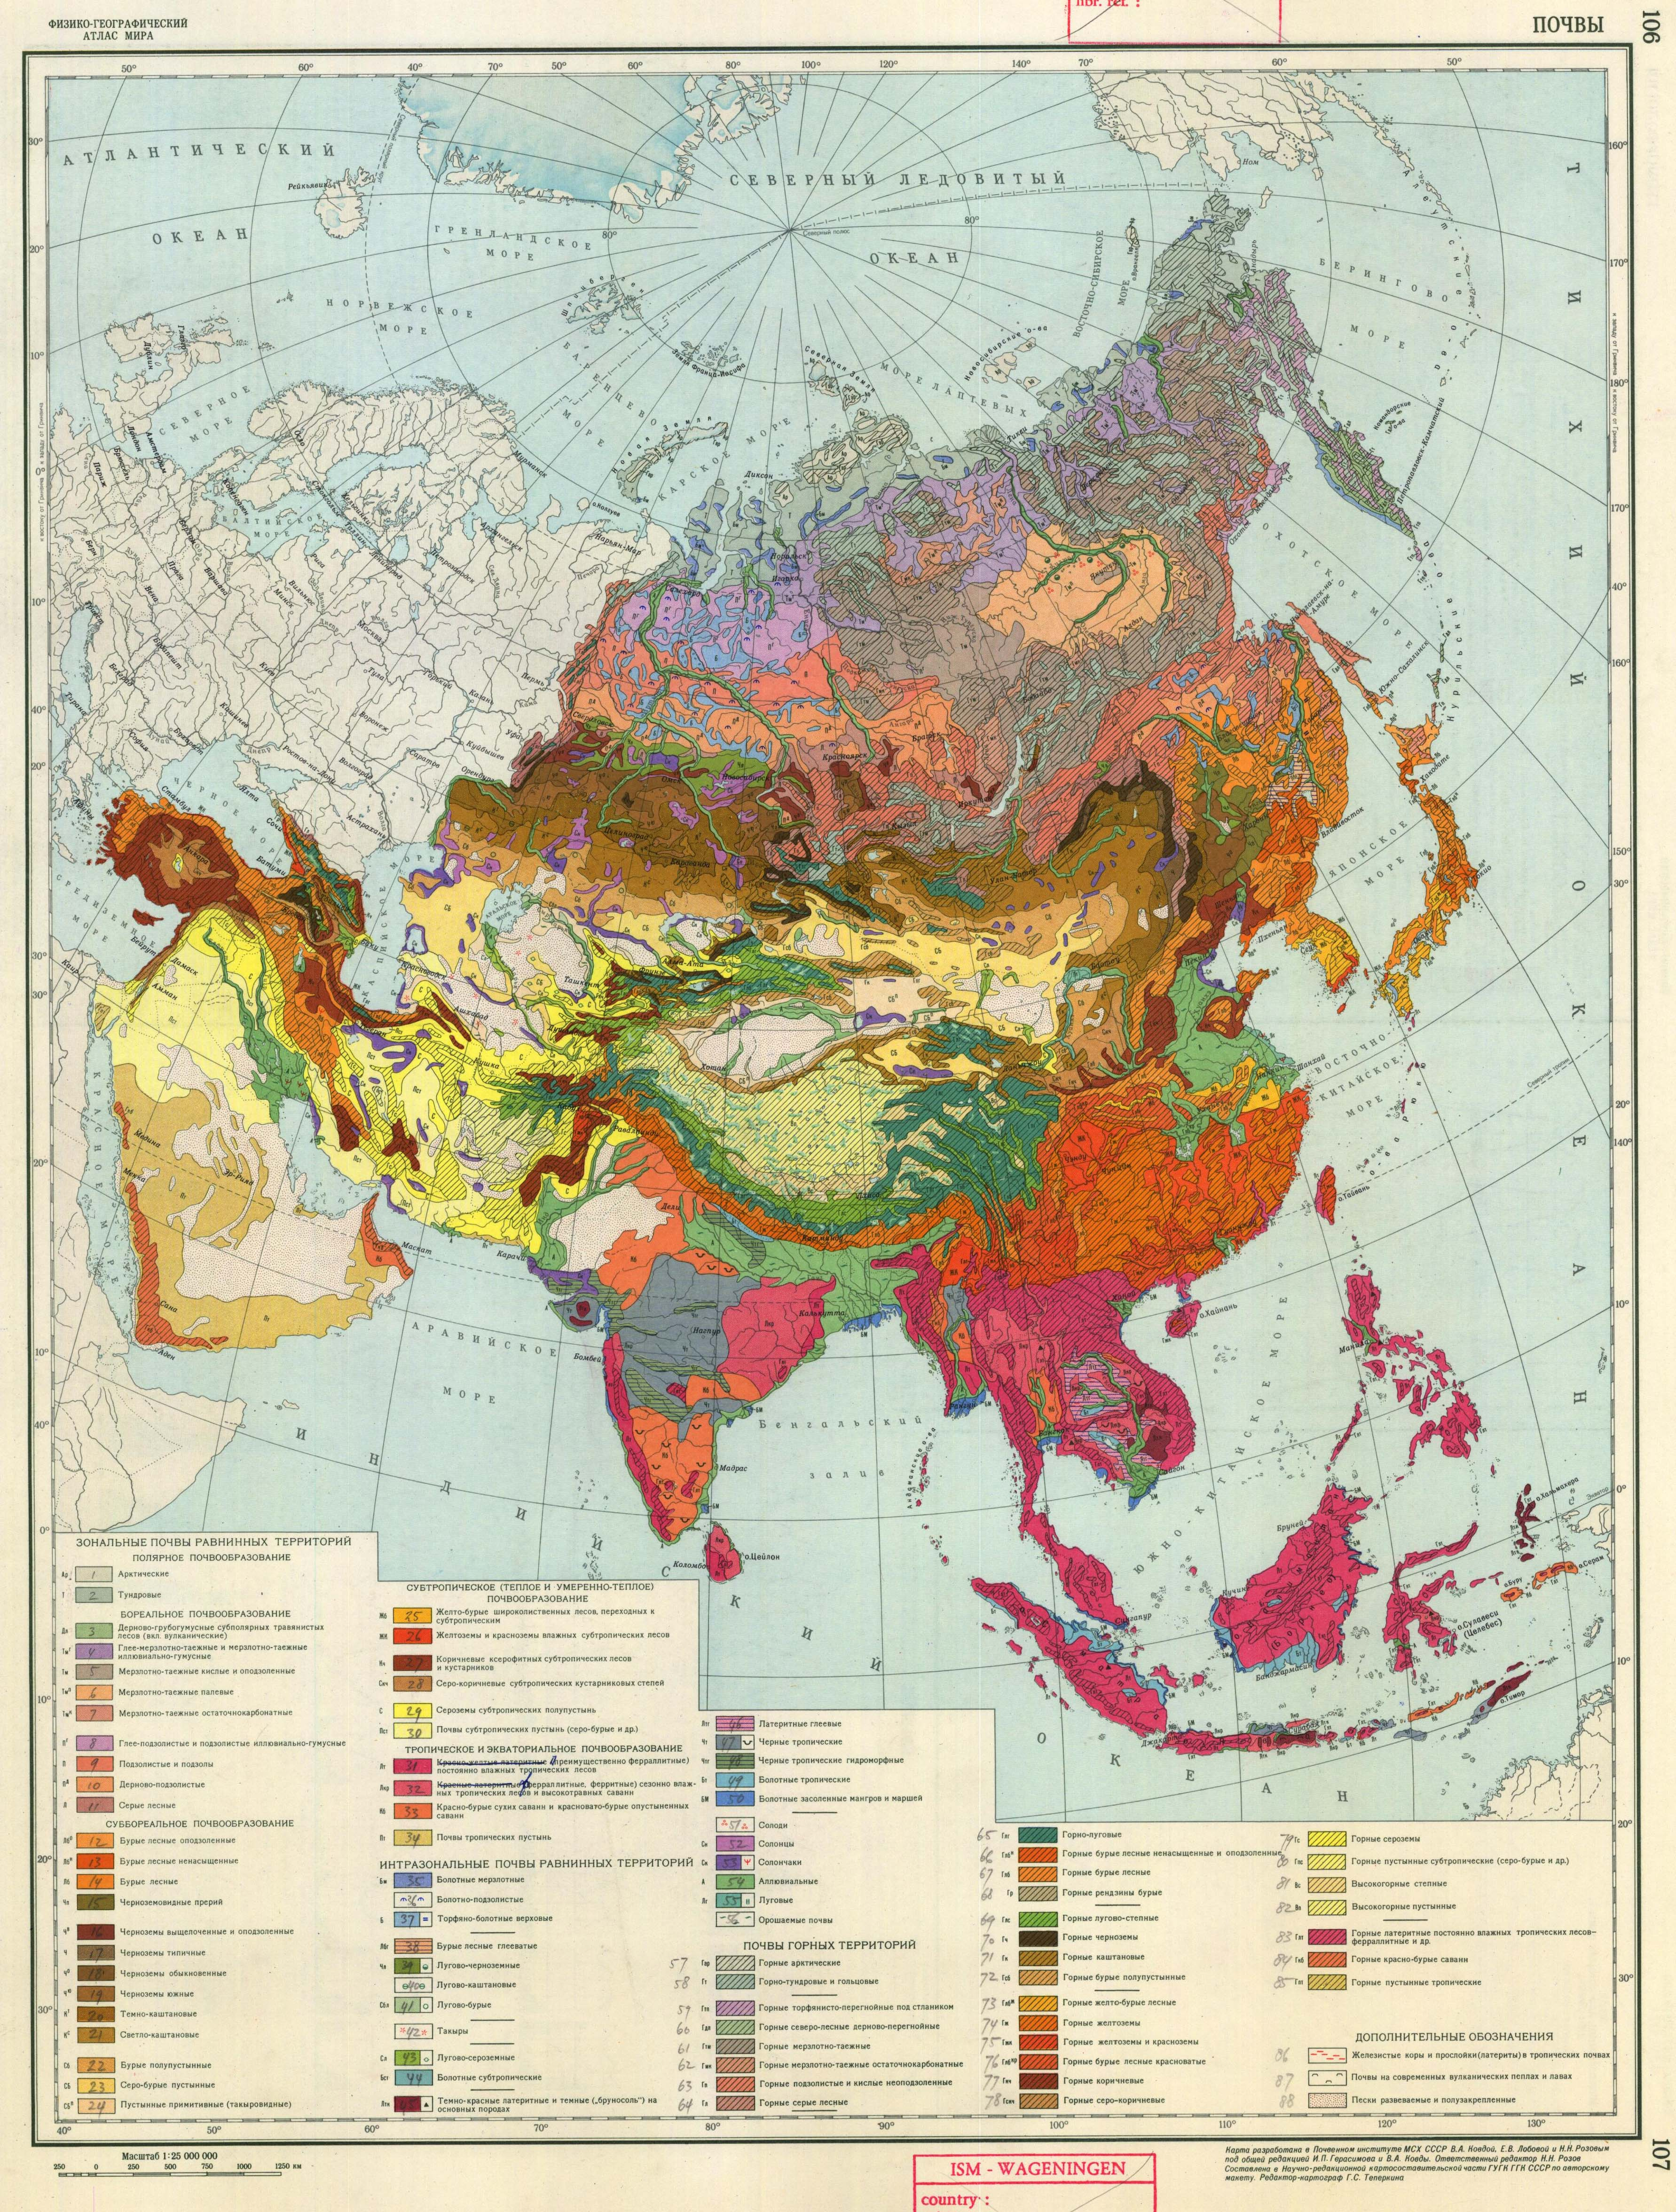 Atlas Map Of Asia.Soil Map Of Asia 106 107 Esdac European Commission